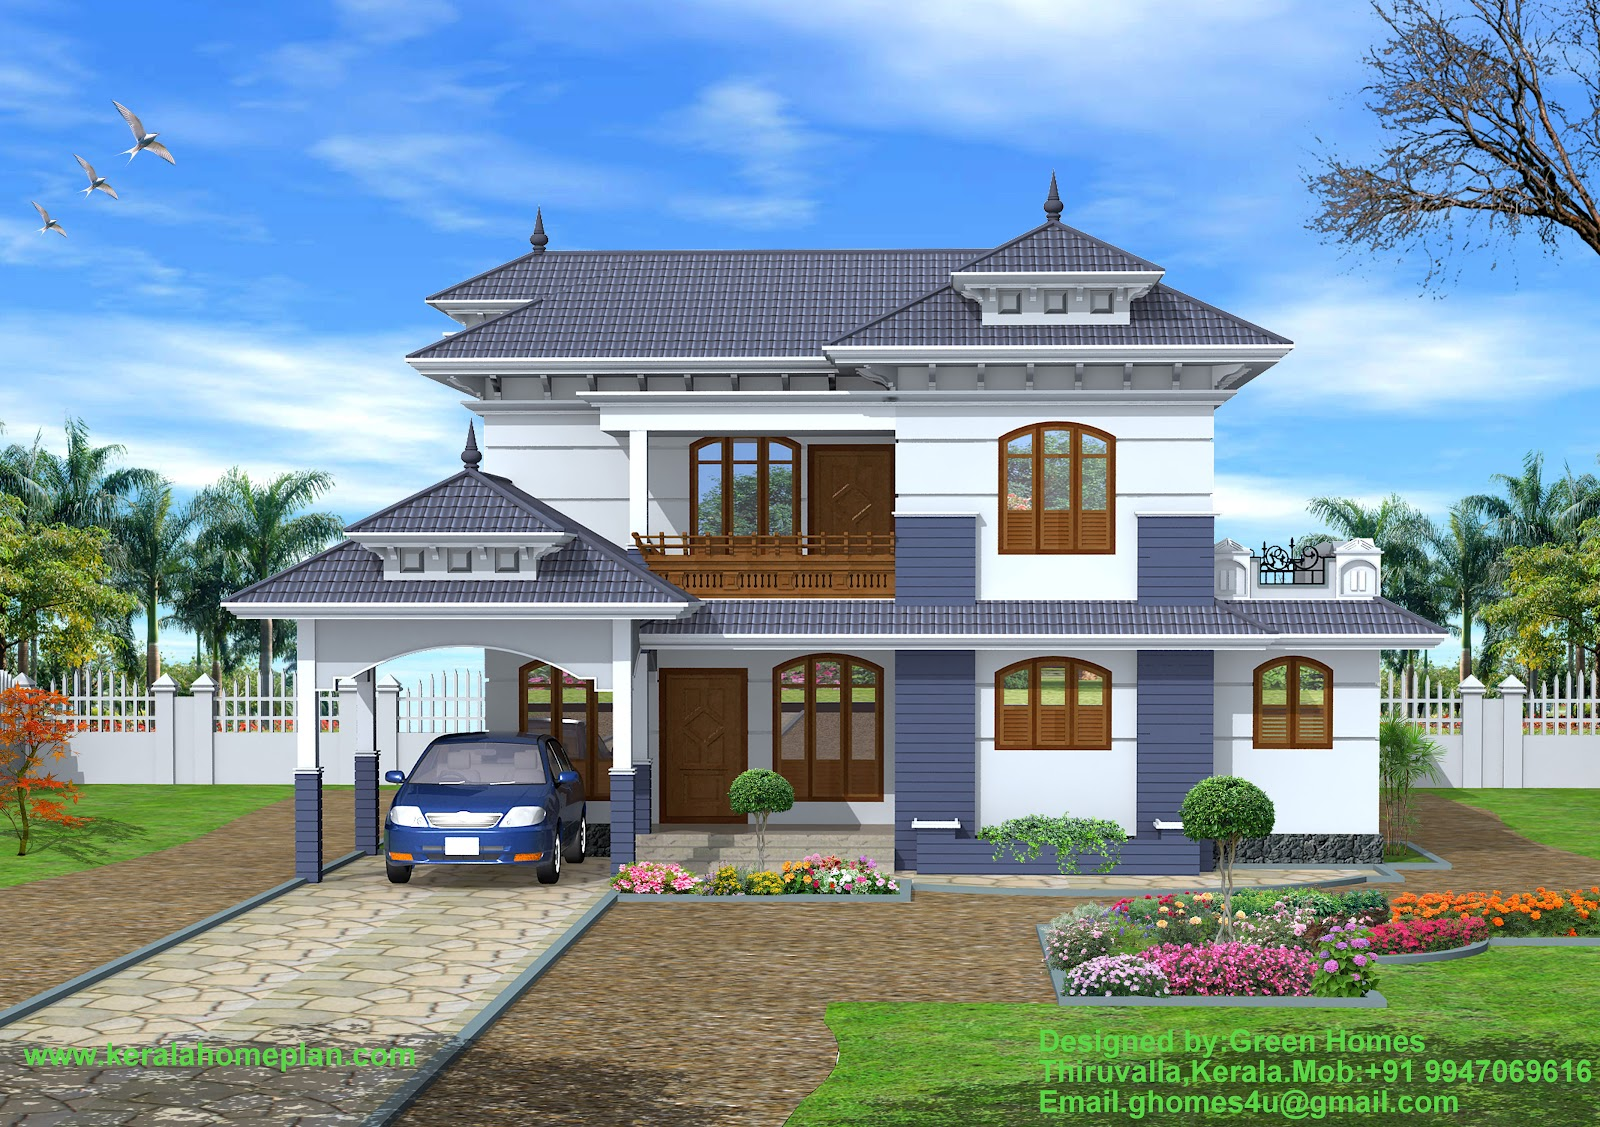 Green homes construction beautiful 4 bhk kerala style for 4 bhk house plans kerala